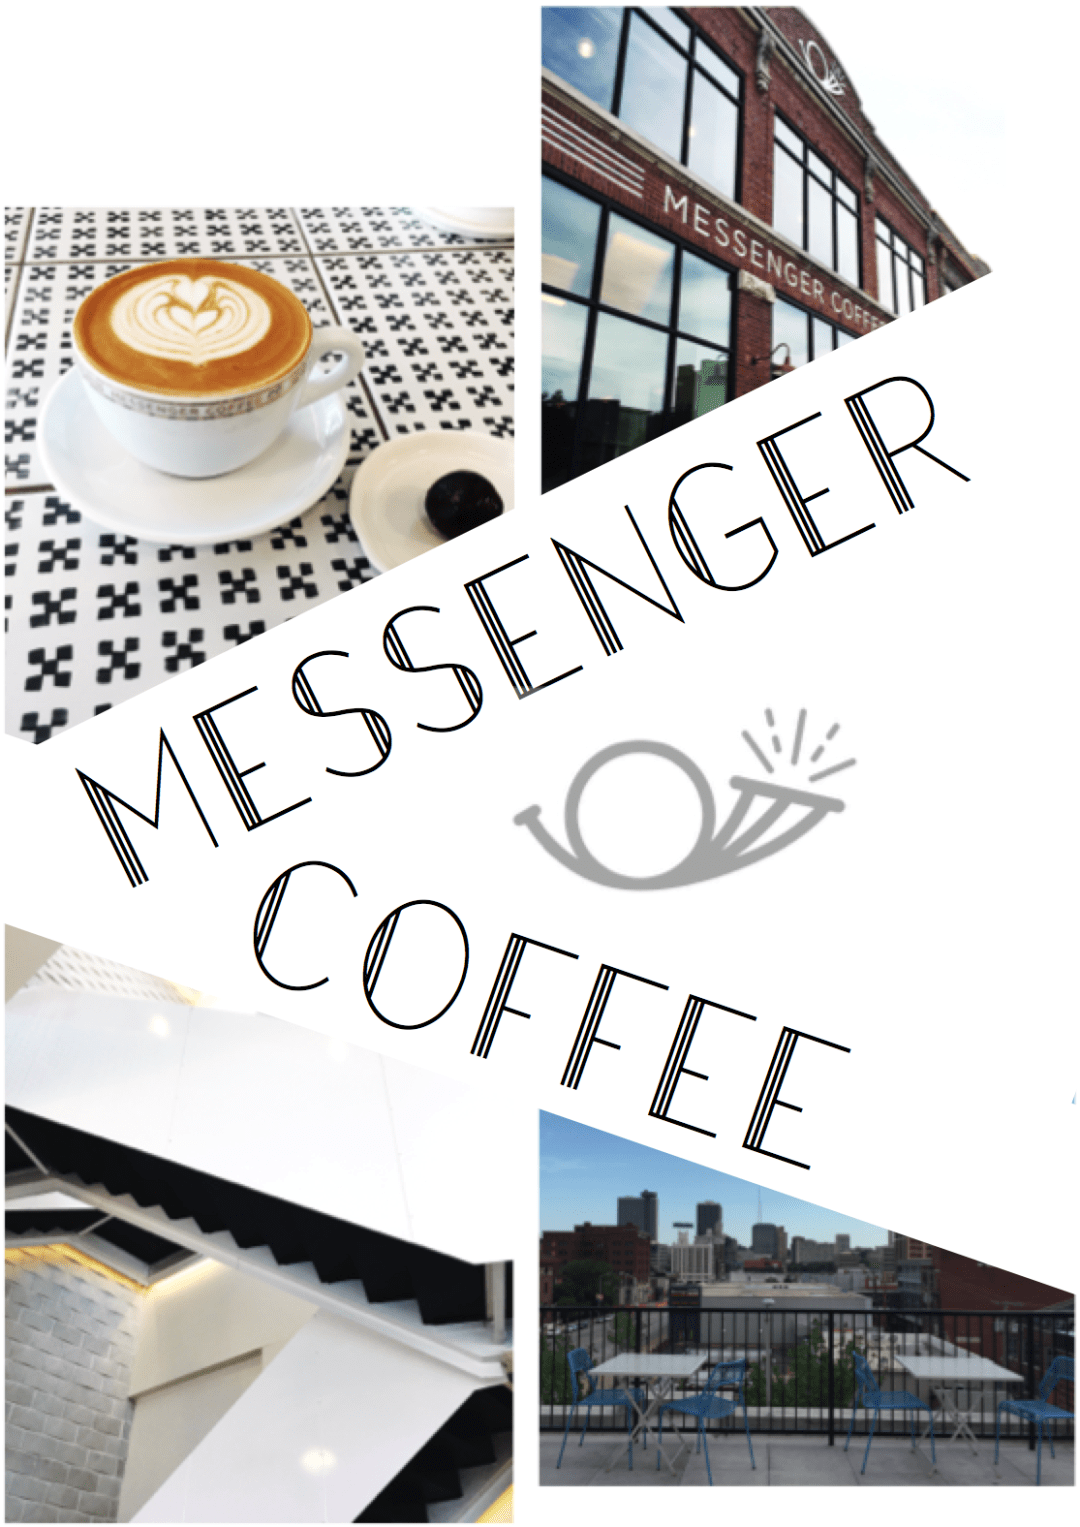 messenger coffee kansas city